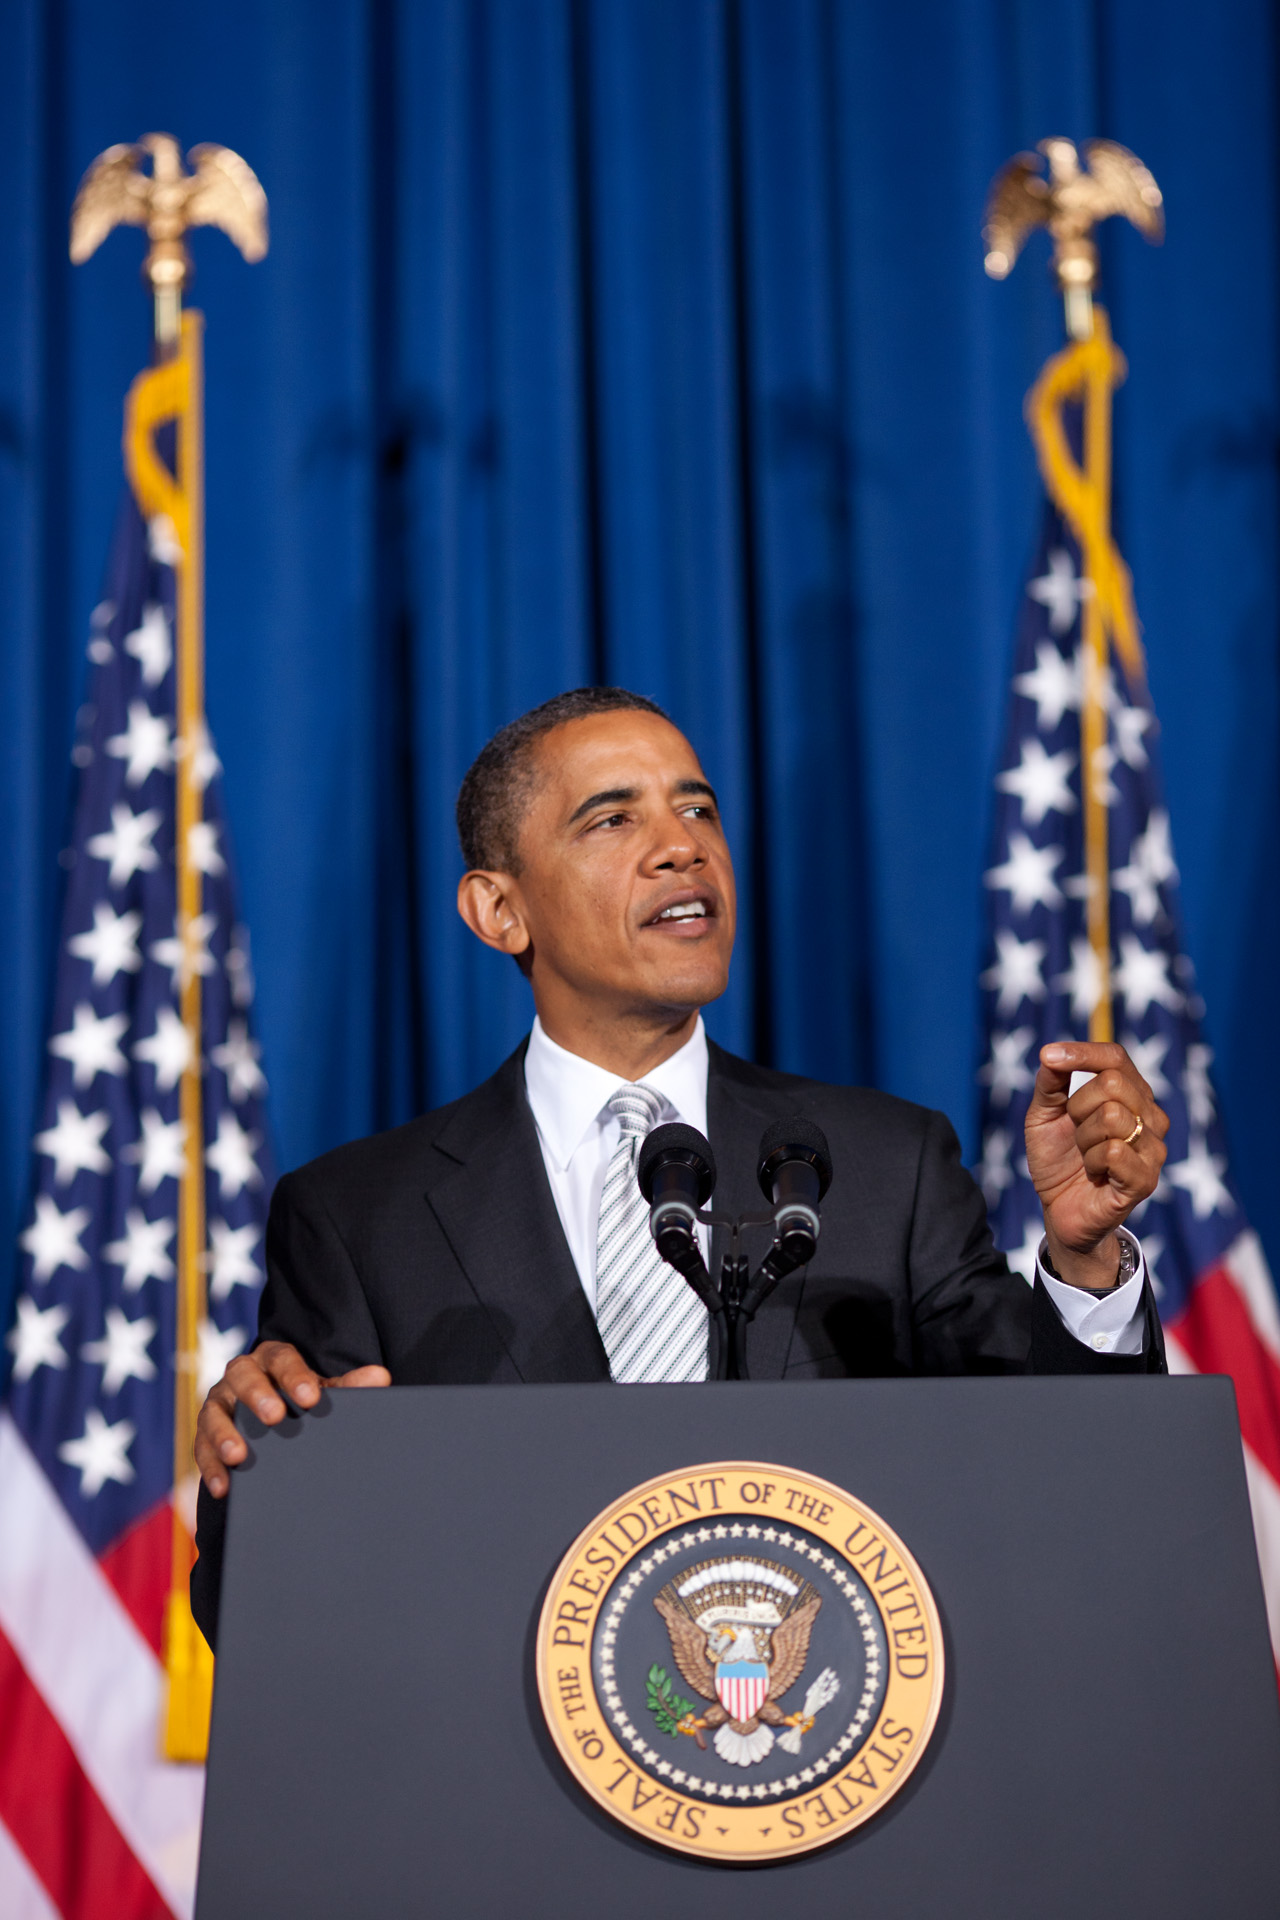 President Obama delivers remarks at the American Latino Heritage Forum